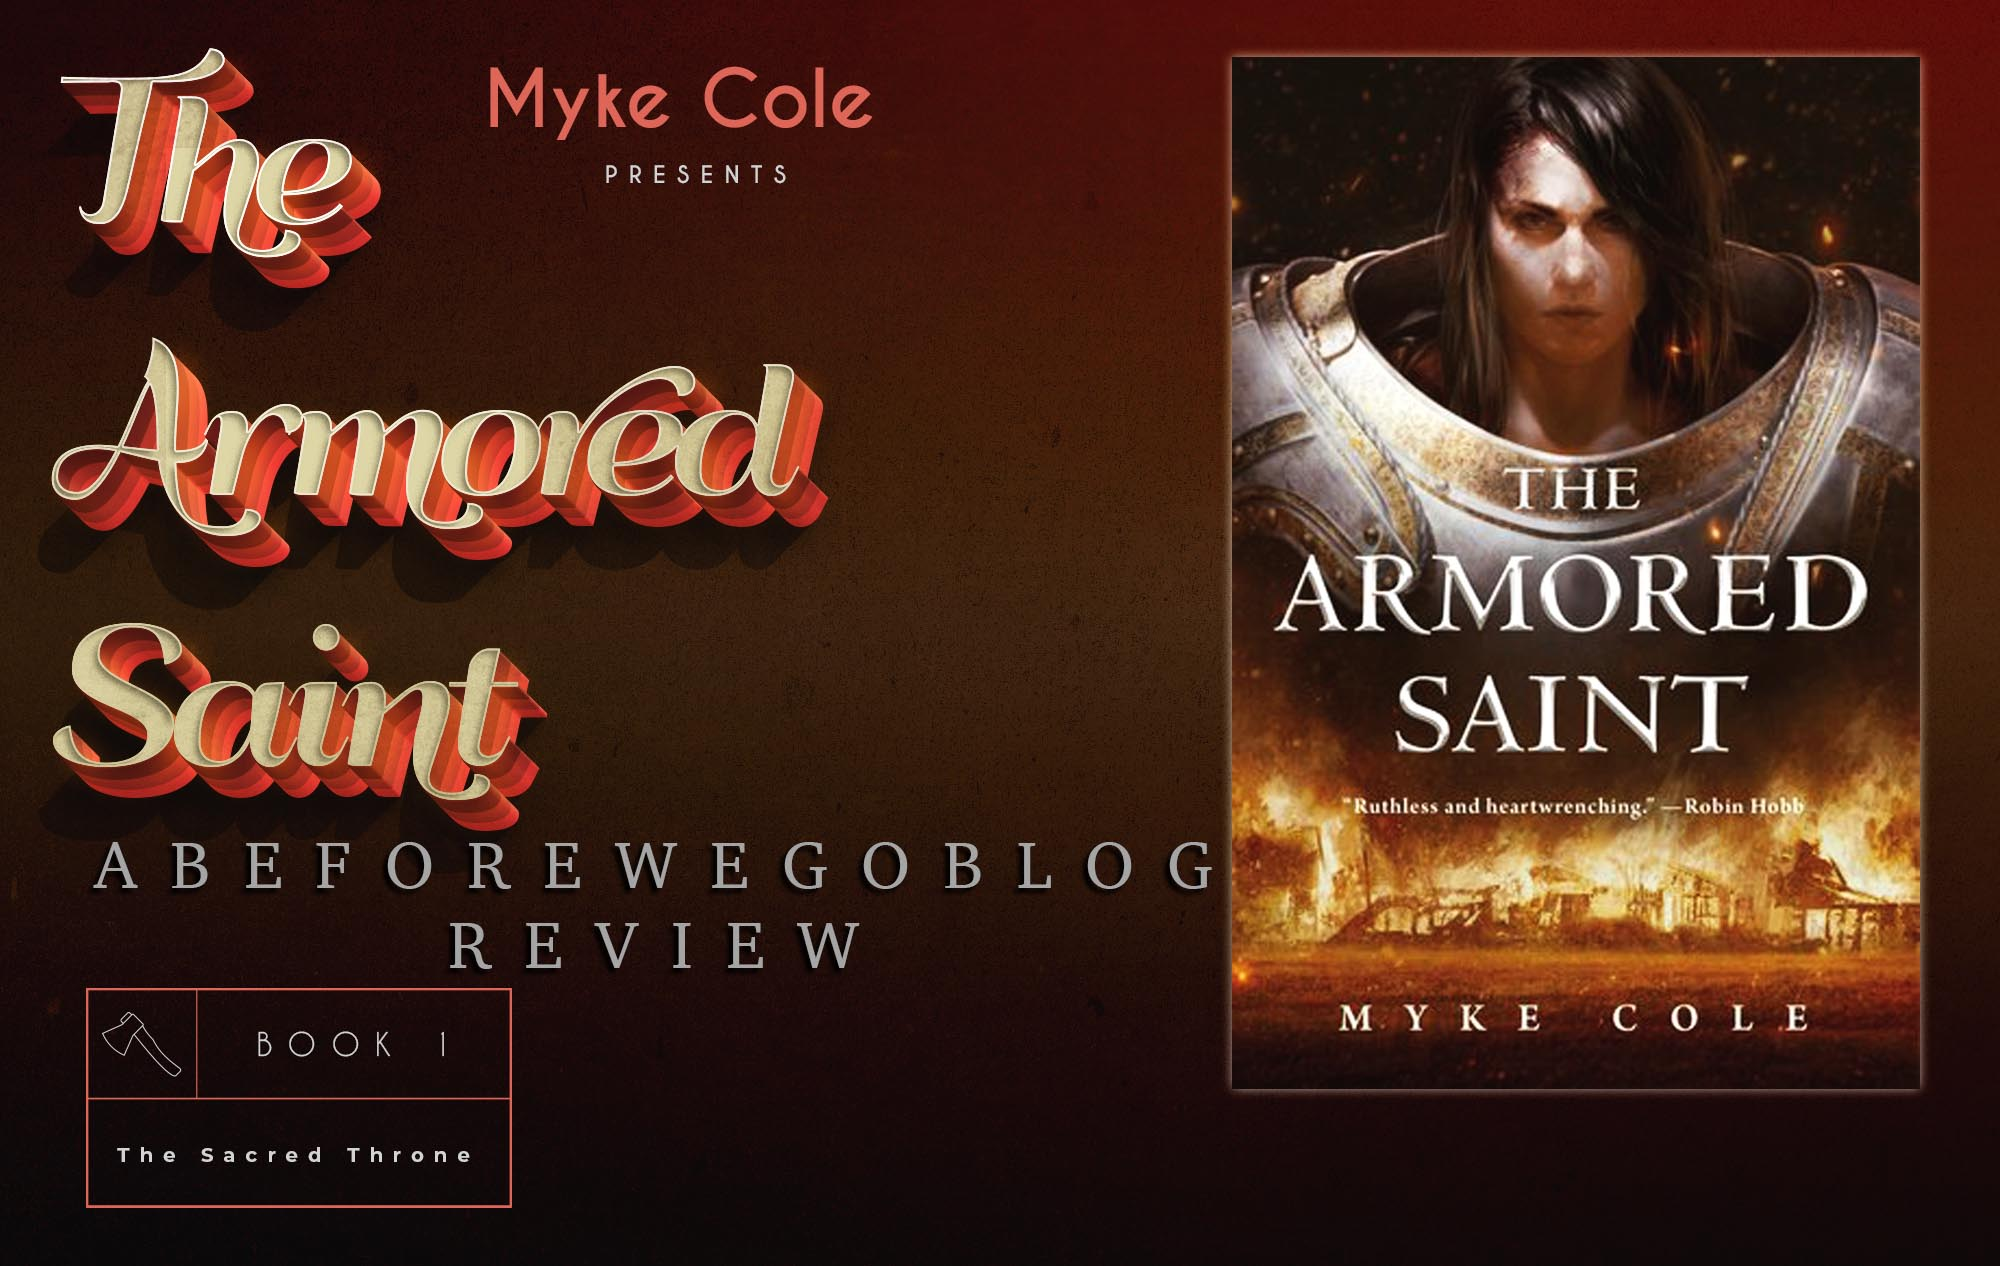 Review of The Armored Saint by Myke Cole